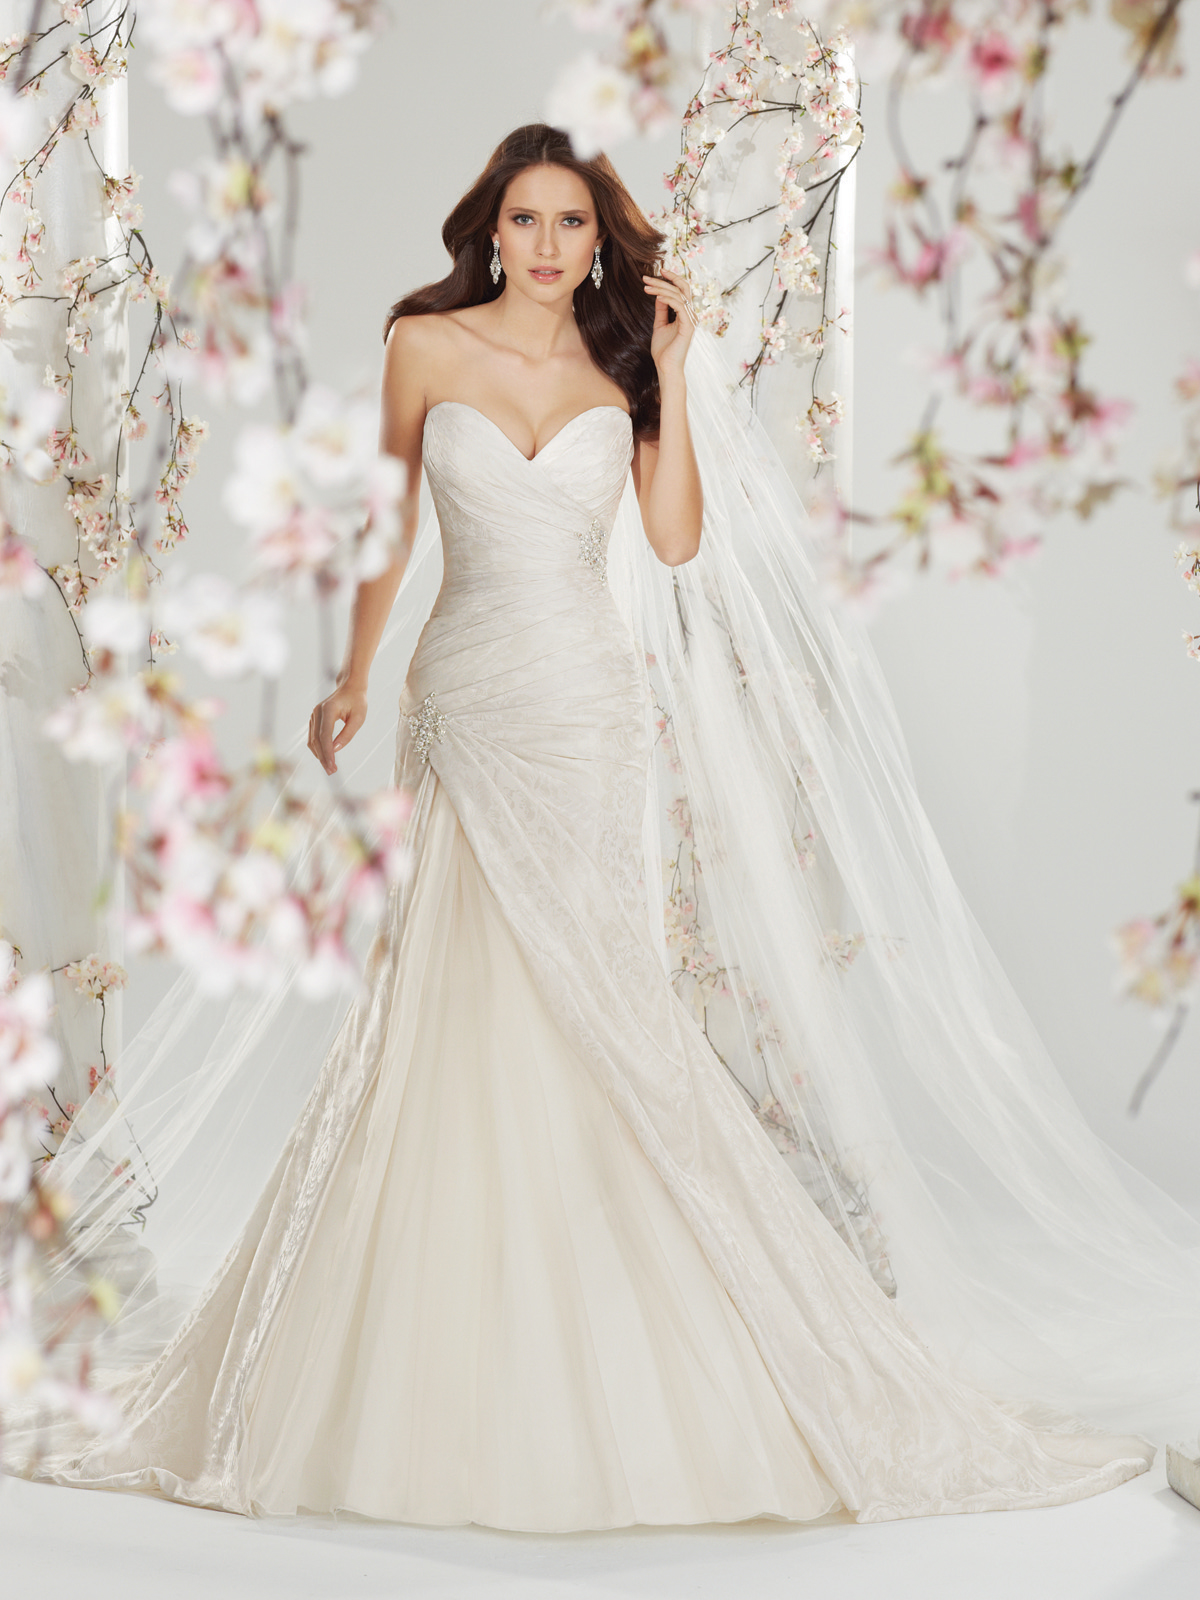 The Best Gowns From Most In Demand Wedding Dress Designers Part 10